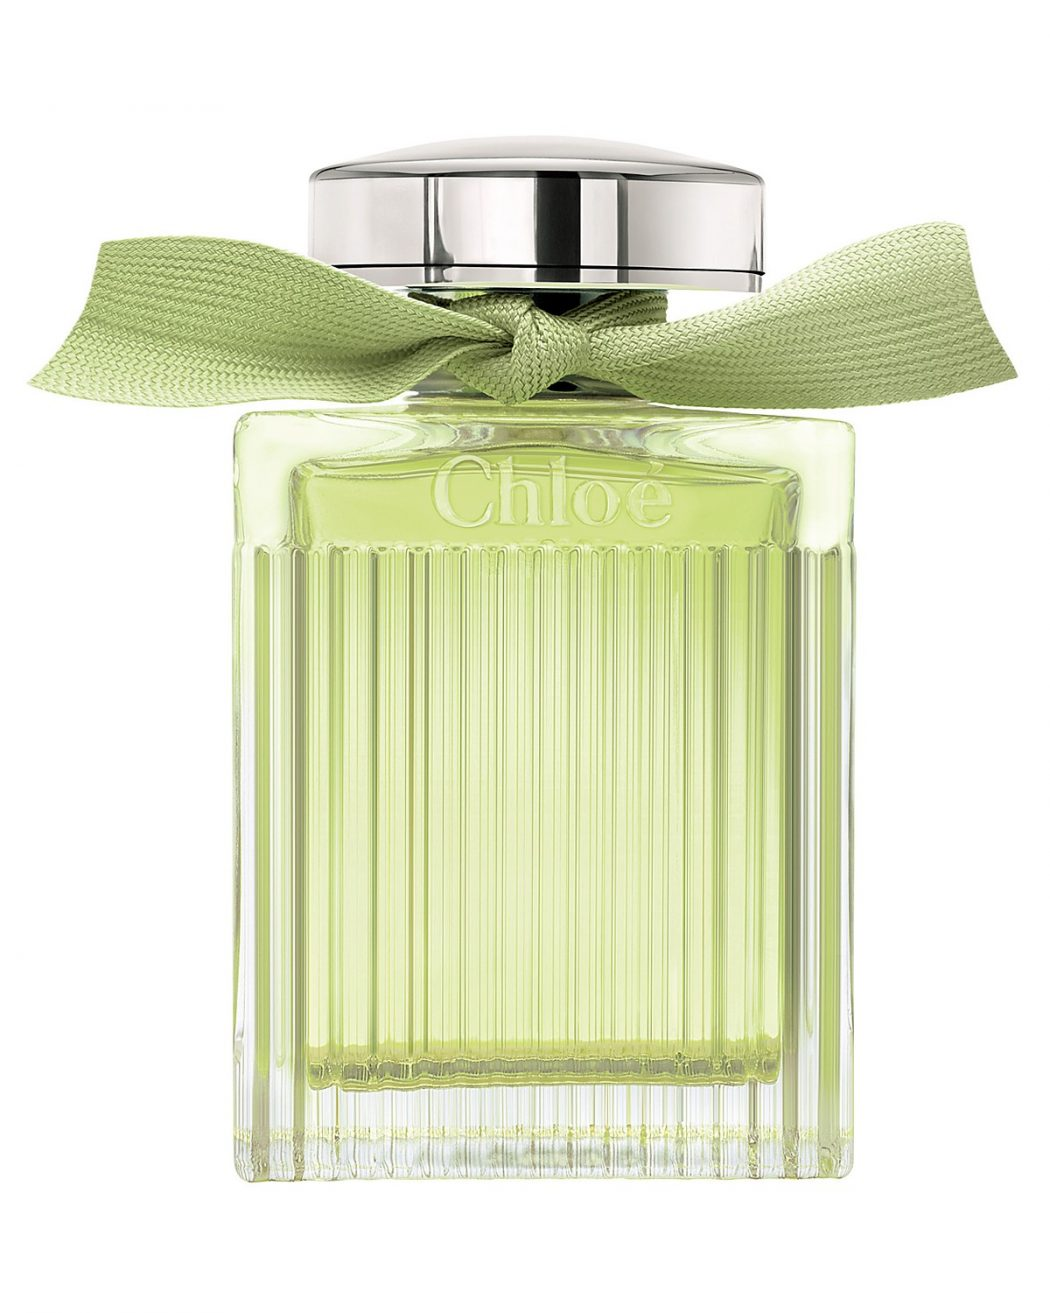 Chloe-LEau-Chloe-Eau-de-Toilette-Spray. Dazzling Collection of Chloe Perfumes Presented Specially to You